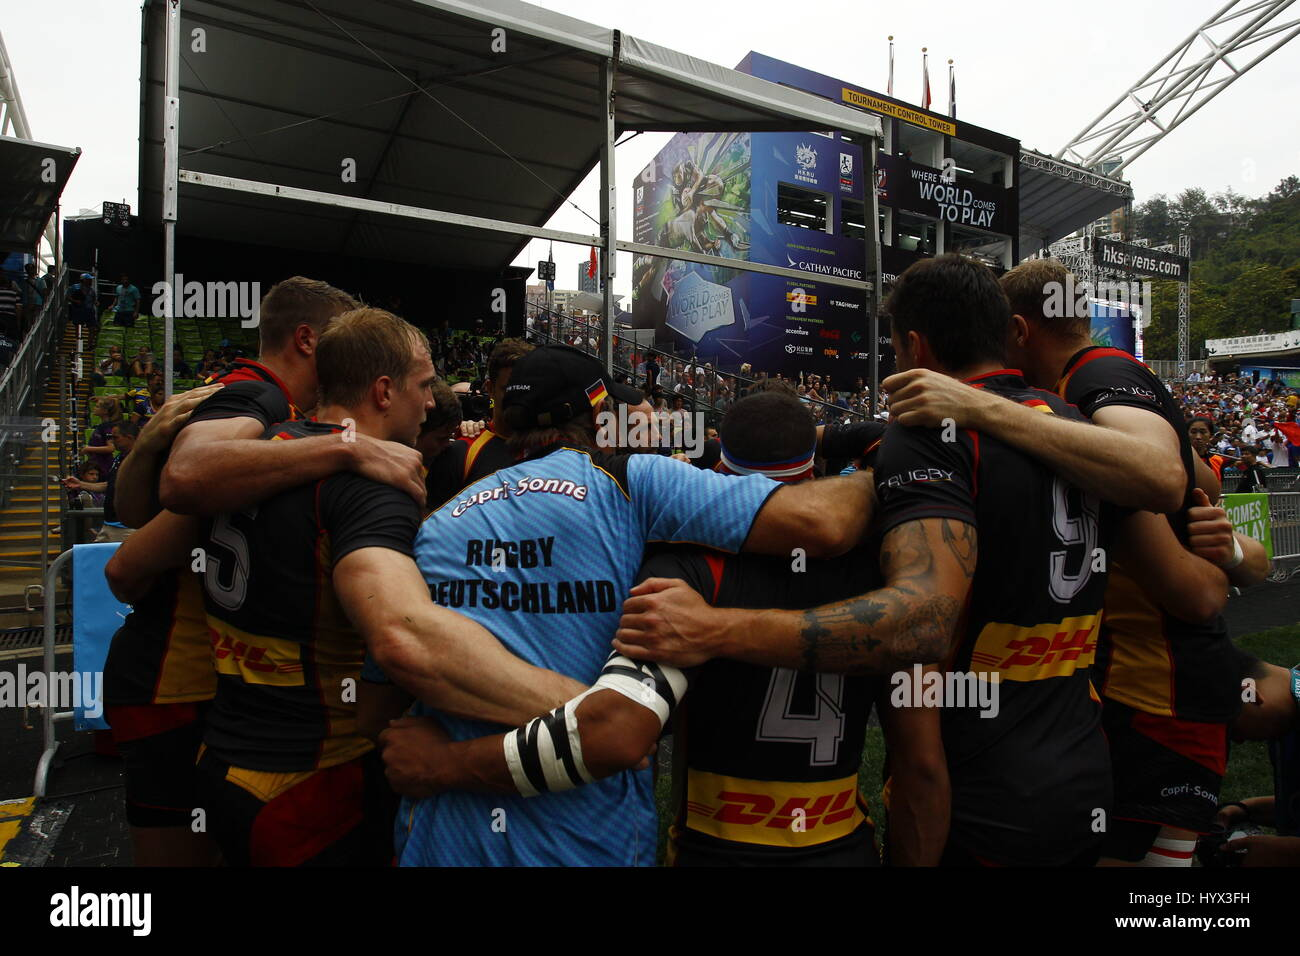 Hong Kong, CHINA. 7th Apr, 2017. A German Rugby Team display comradeship after winning the opening match against - Stock Image